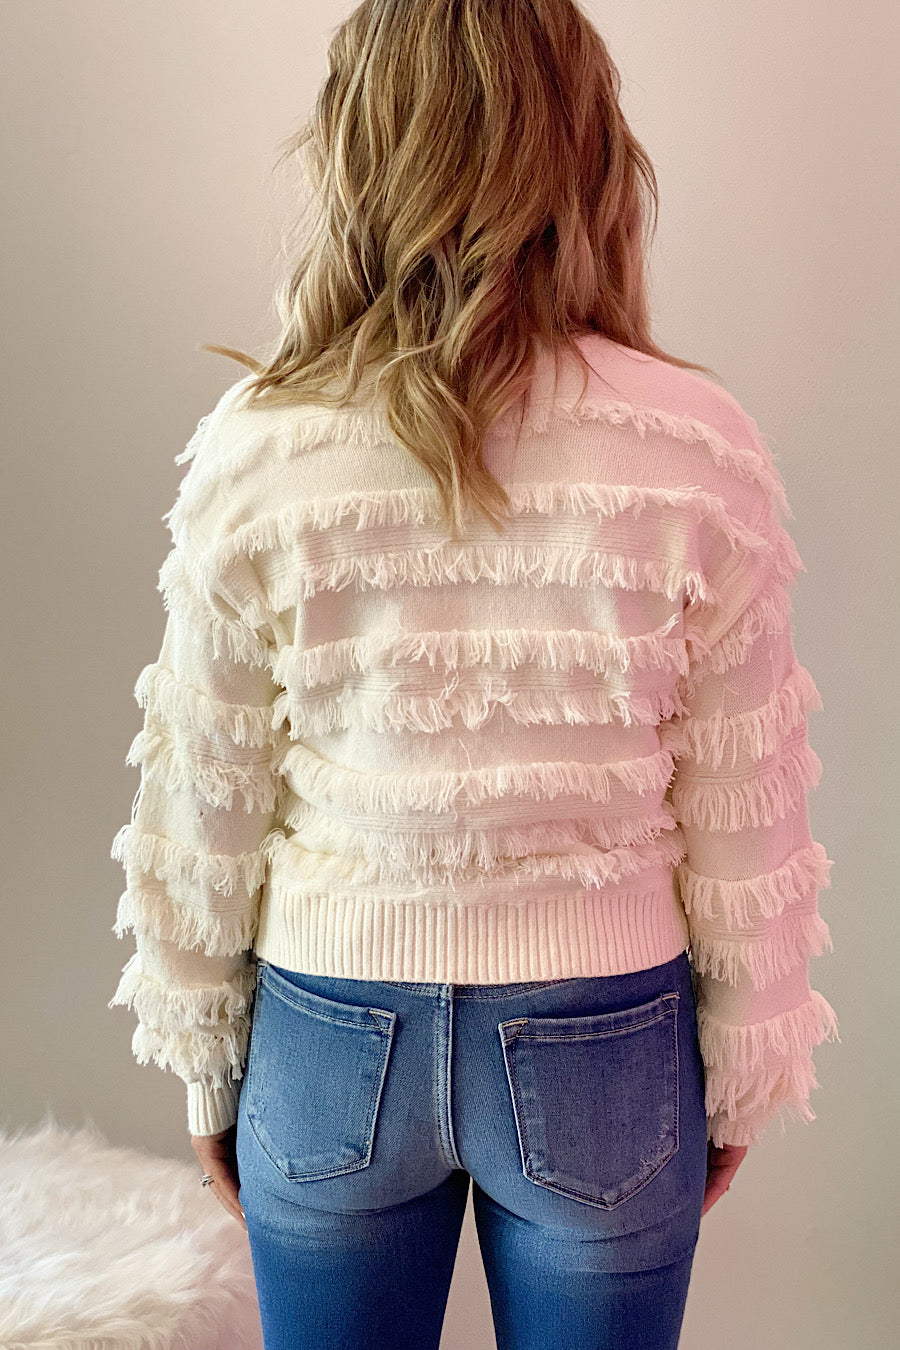 Du Jour Fringe Top in Ivory